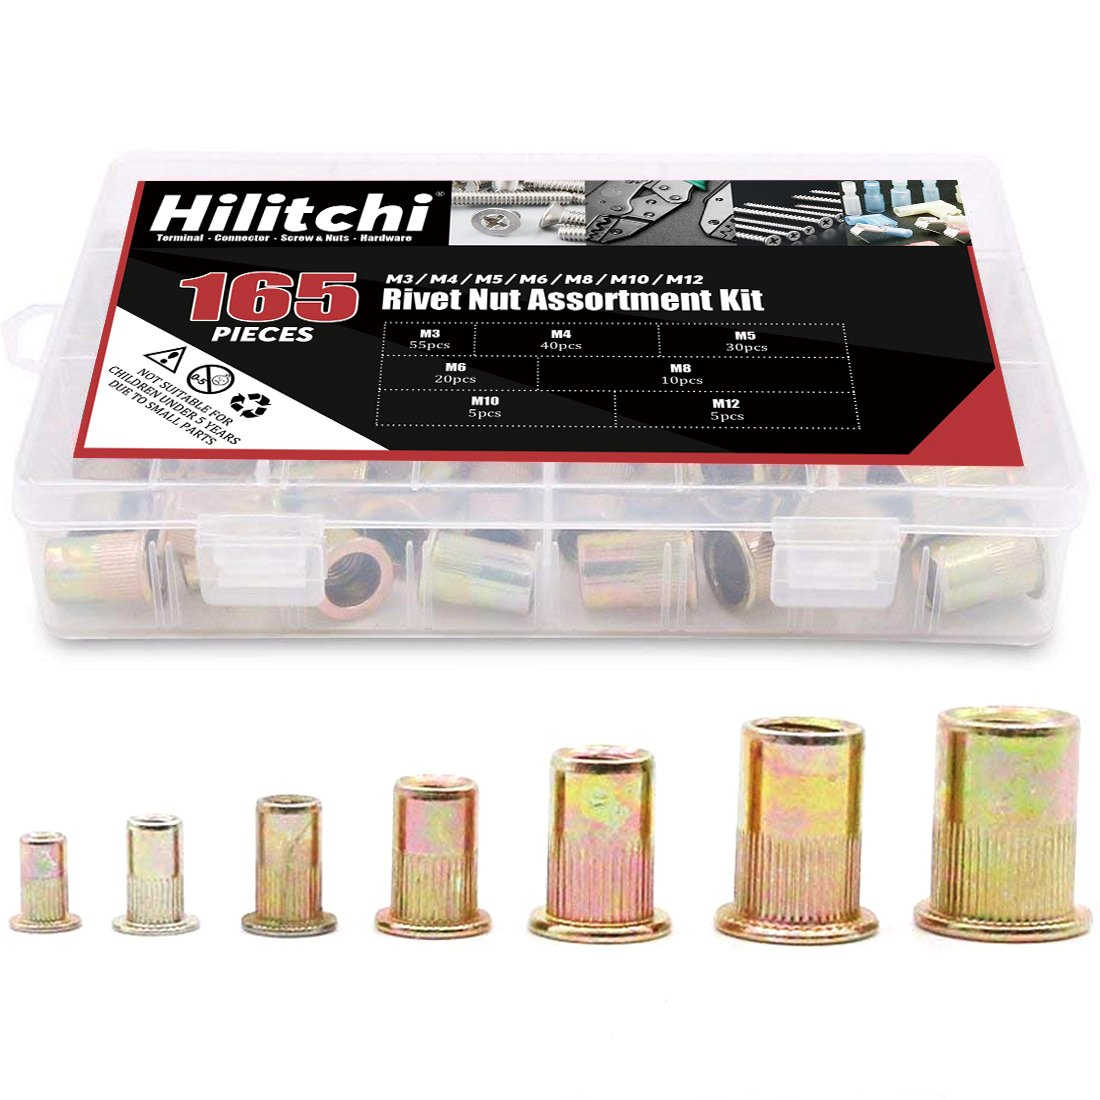 Hilitchi 150pcs Mixed Zinc Plated Carbon Steel Rivet Nut Threaded Insert Nutsert M4  5  6  8  10